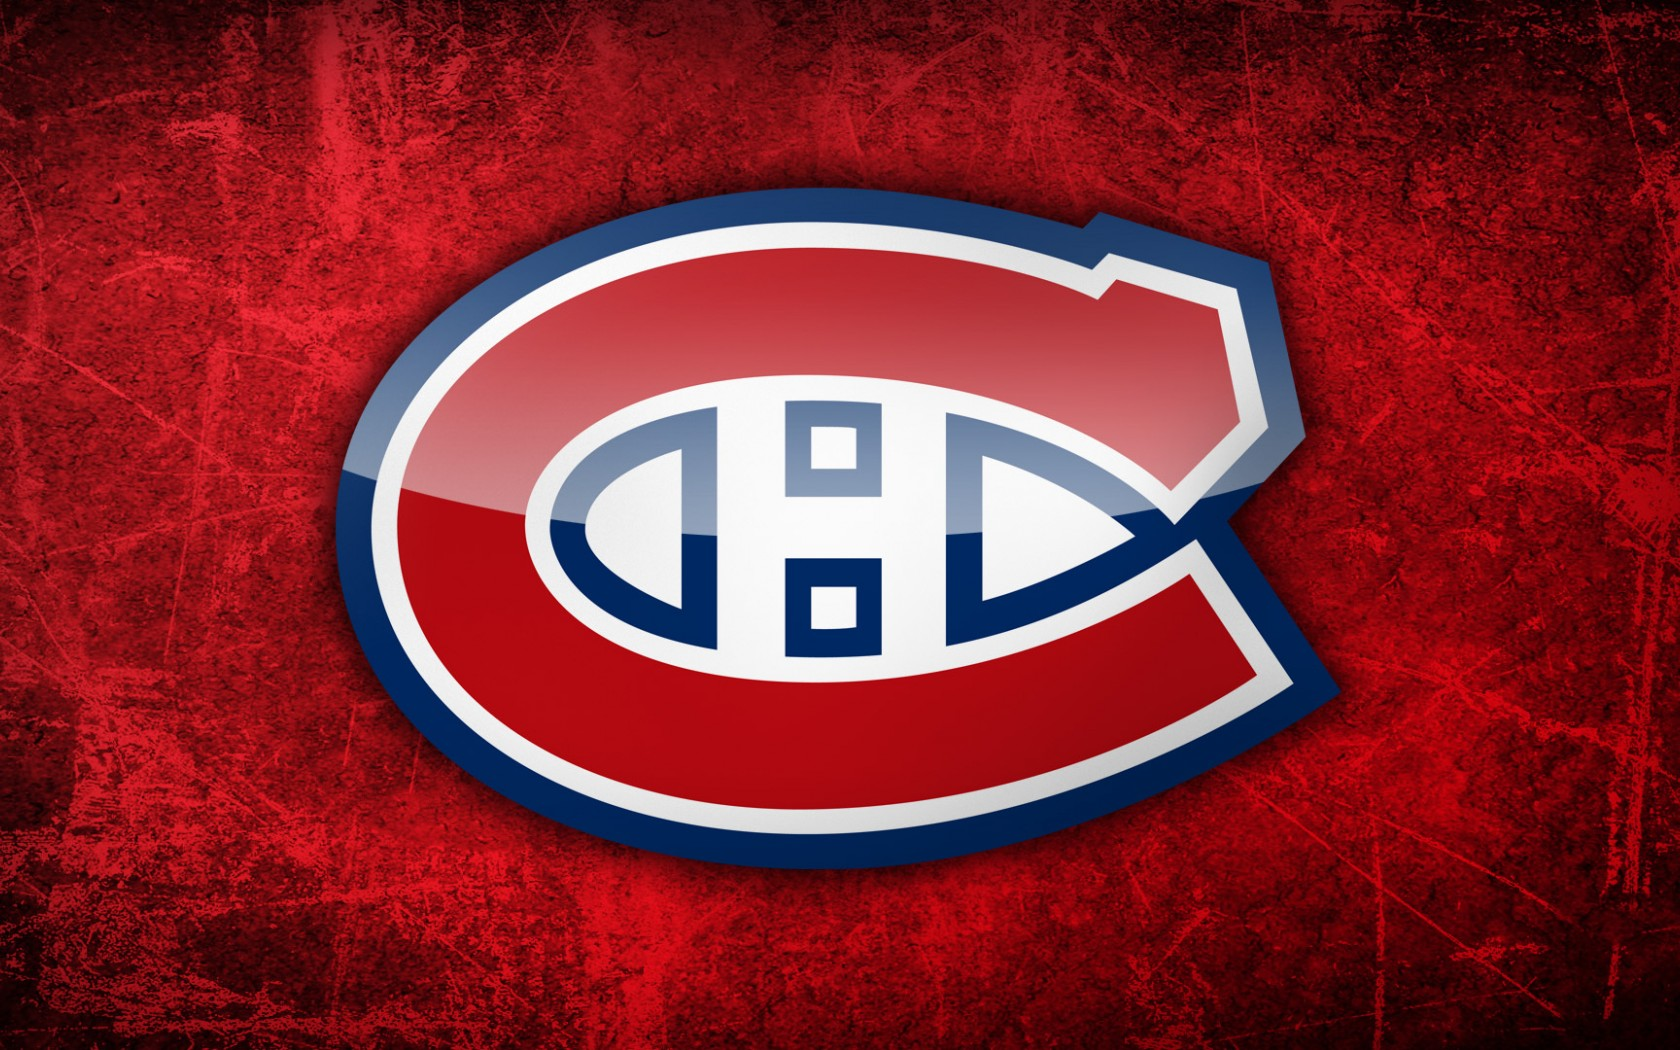 Carey price wallpapers montreal habs montreal hockey 9 html code - Montreal Canadiens Nhl Cbssports Complete Montreal Canadiens Nhl